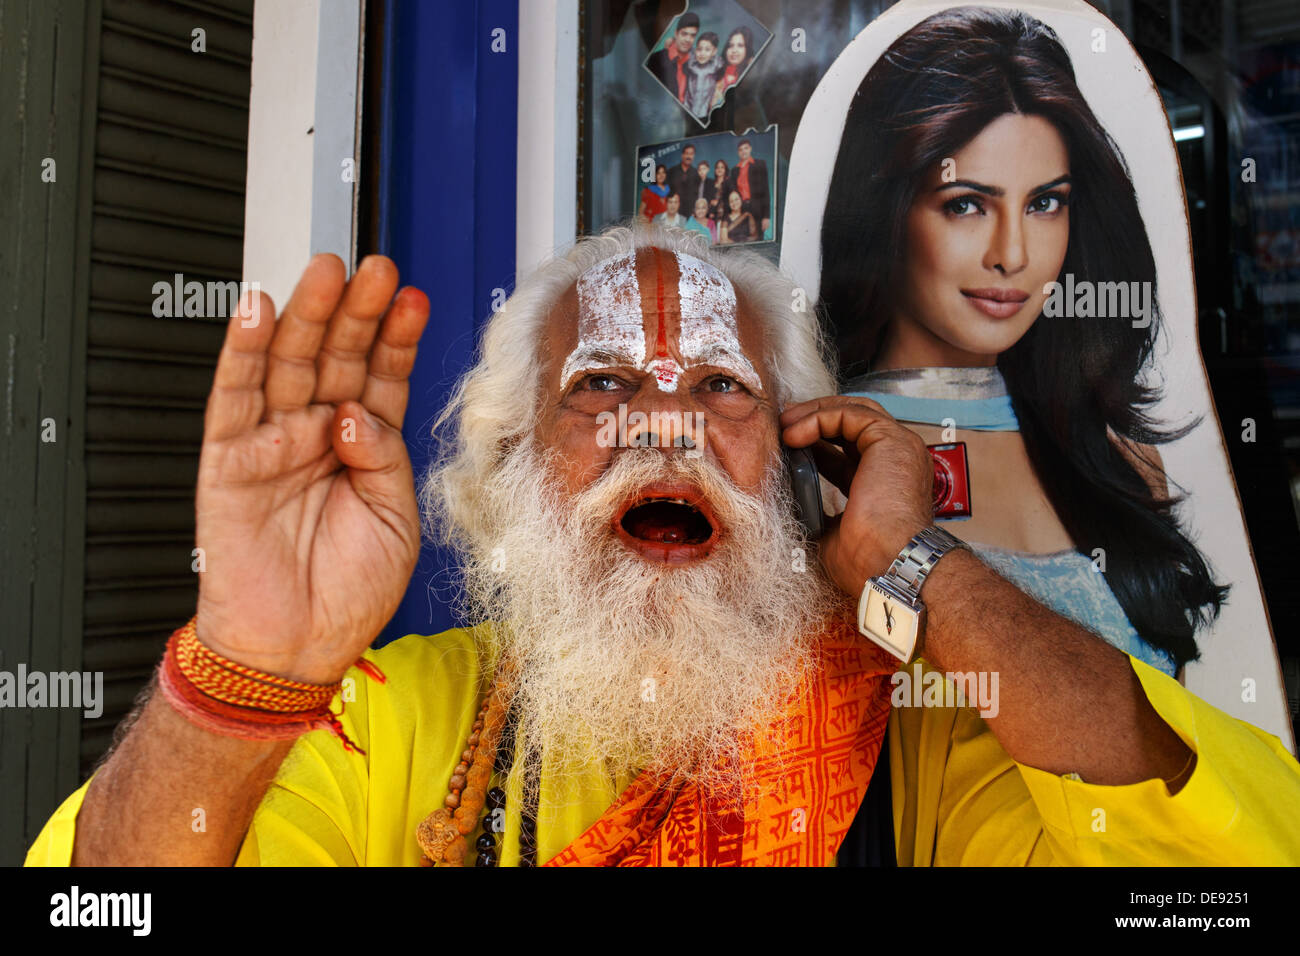 A Hindu priest speaks on a mobile phone (cellphone) in Central Mumbai, India with a poster advertising digital cameras - Stock Image